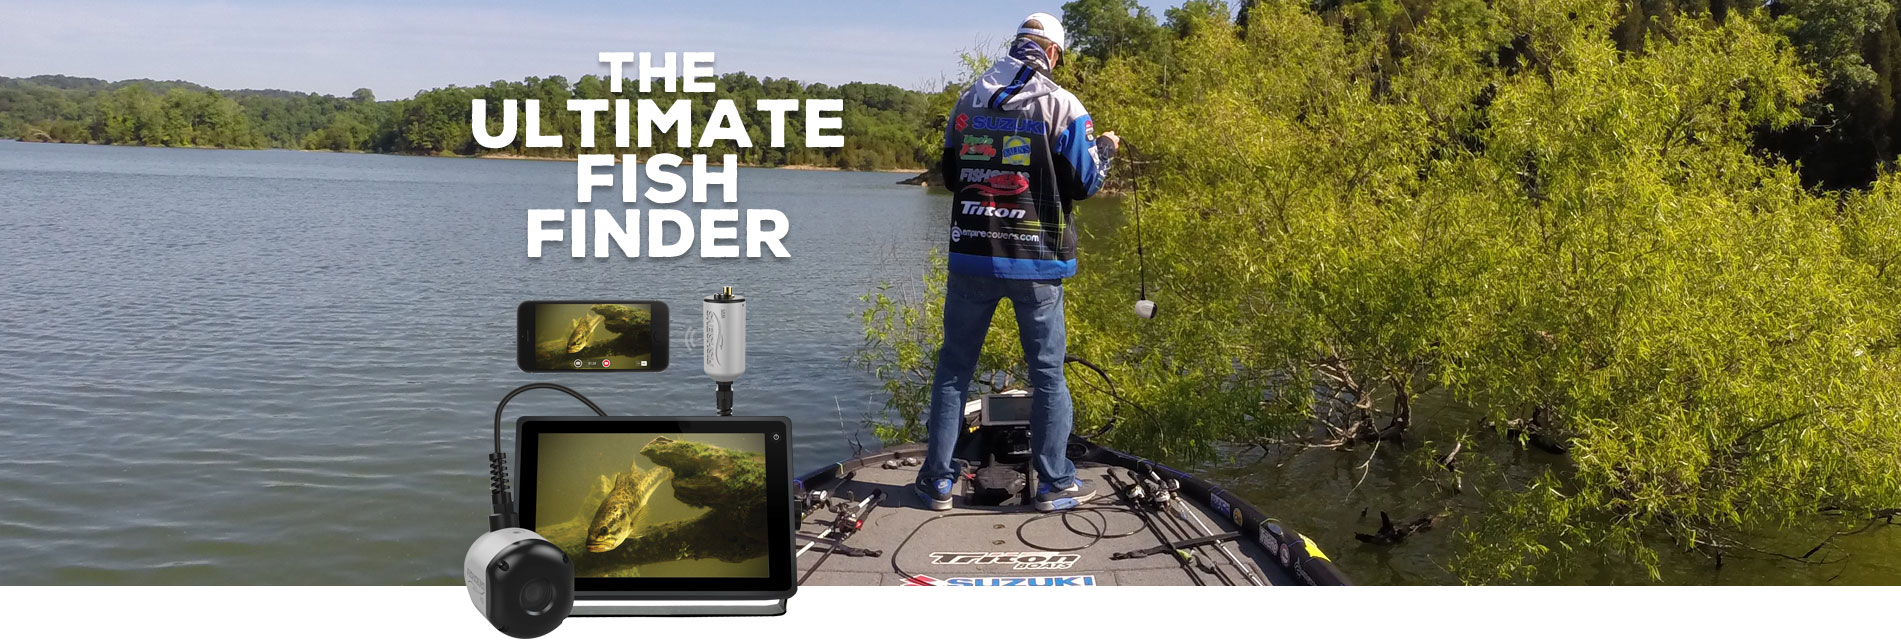 The Ultimate Fish Finder